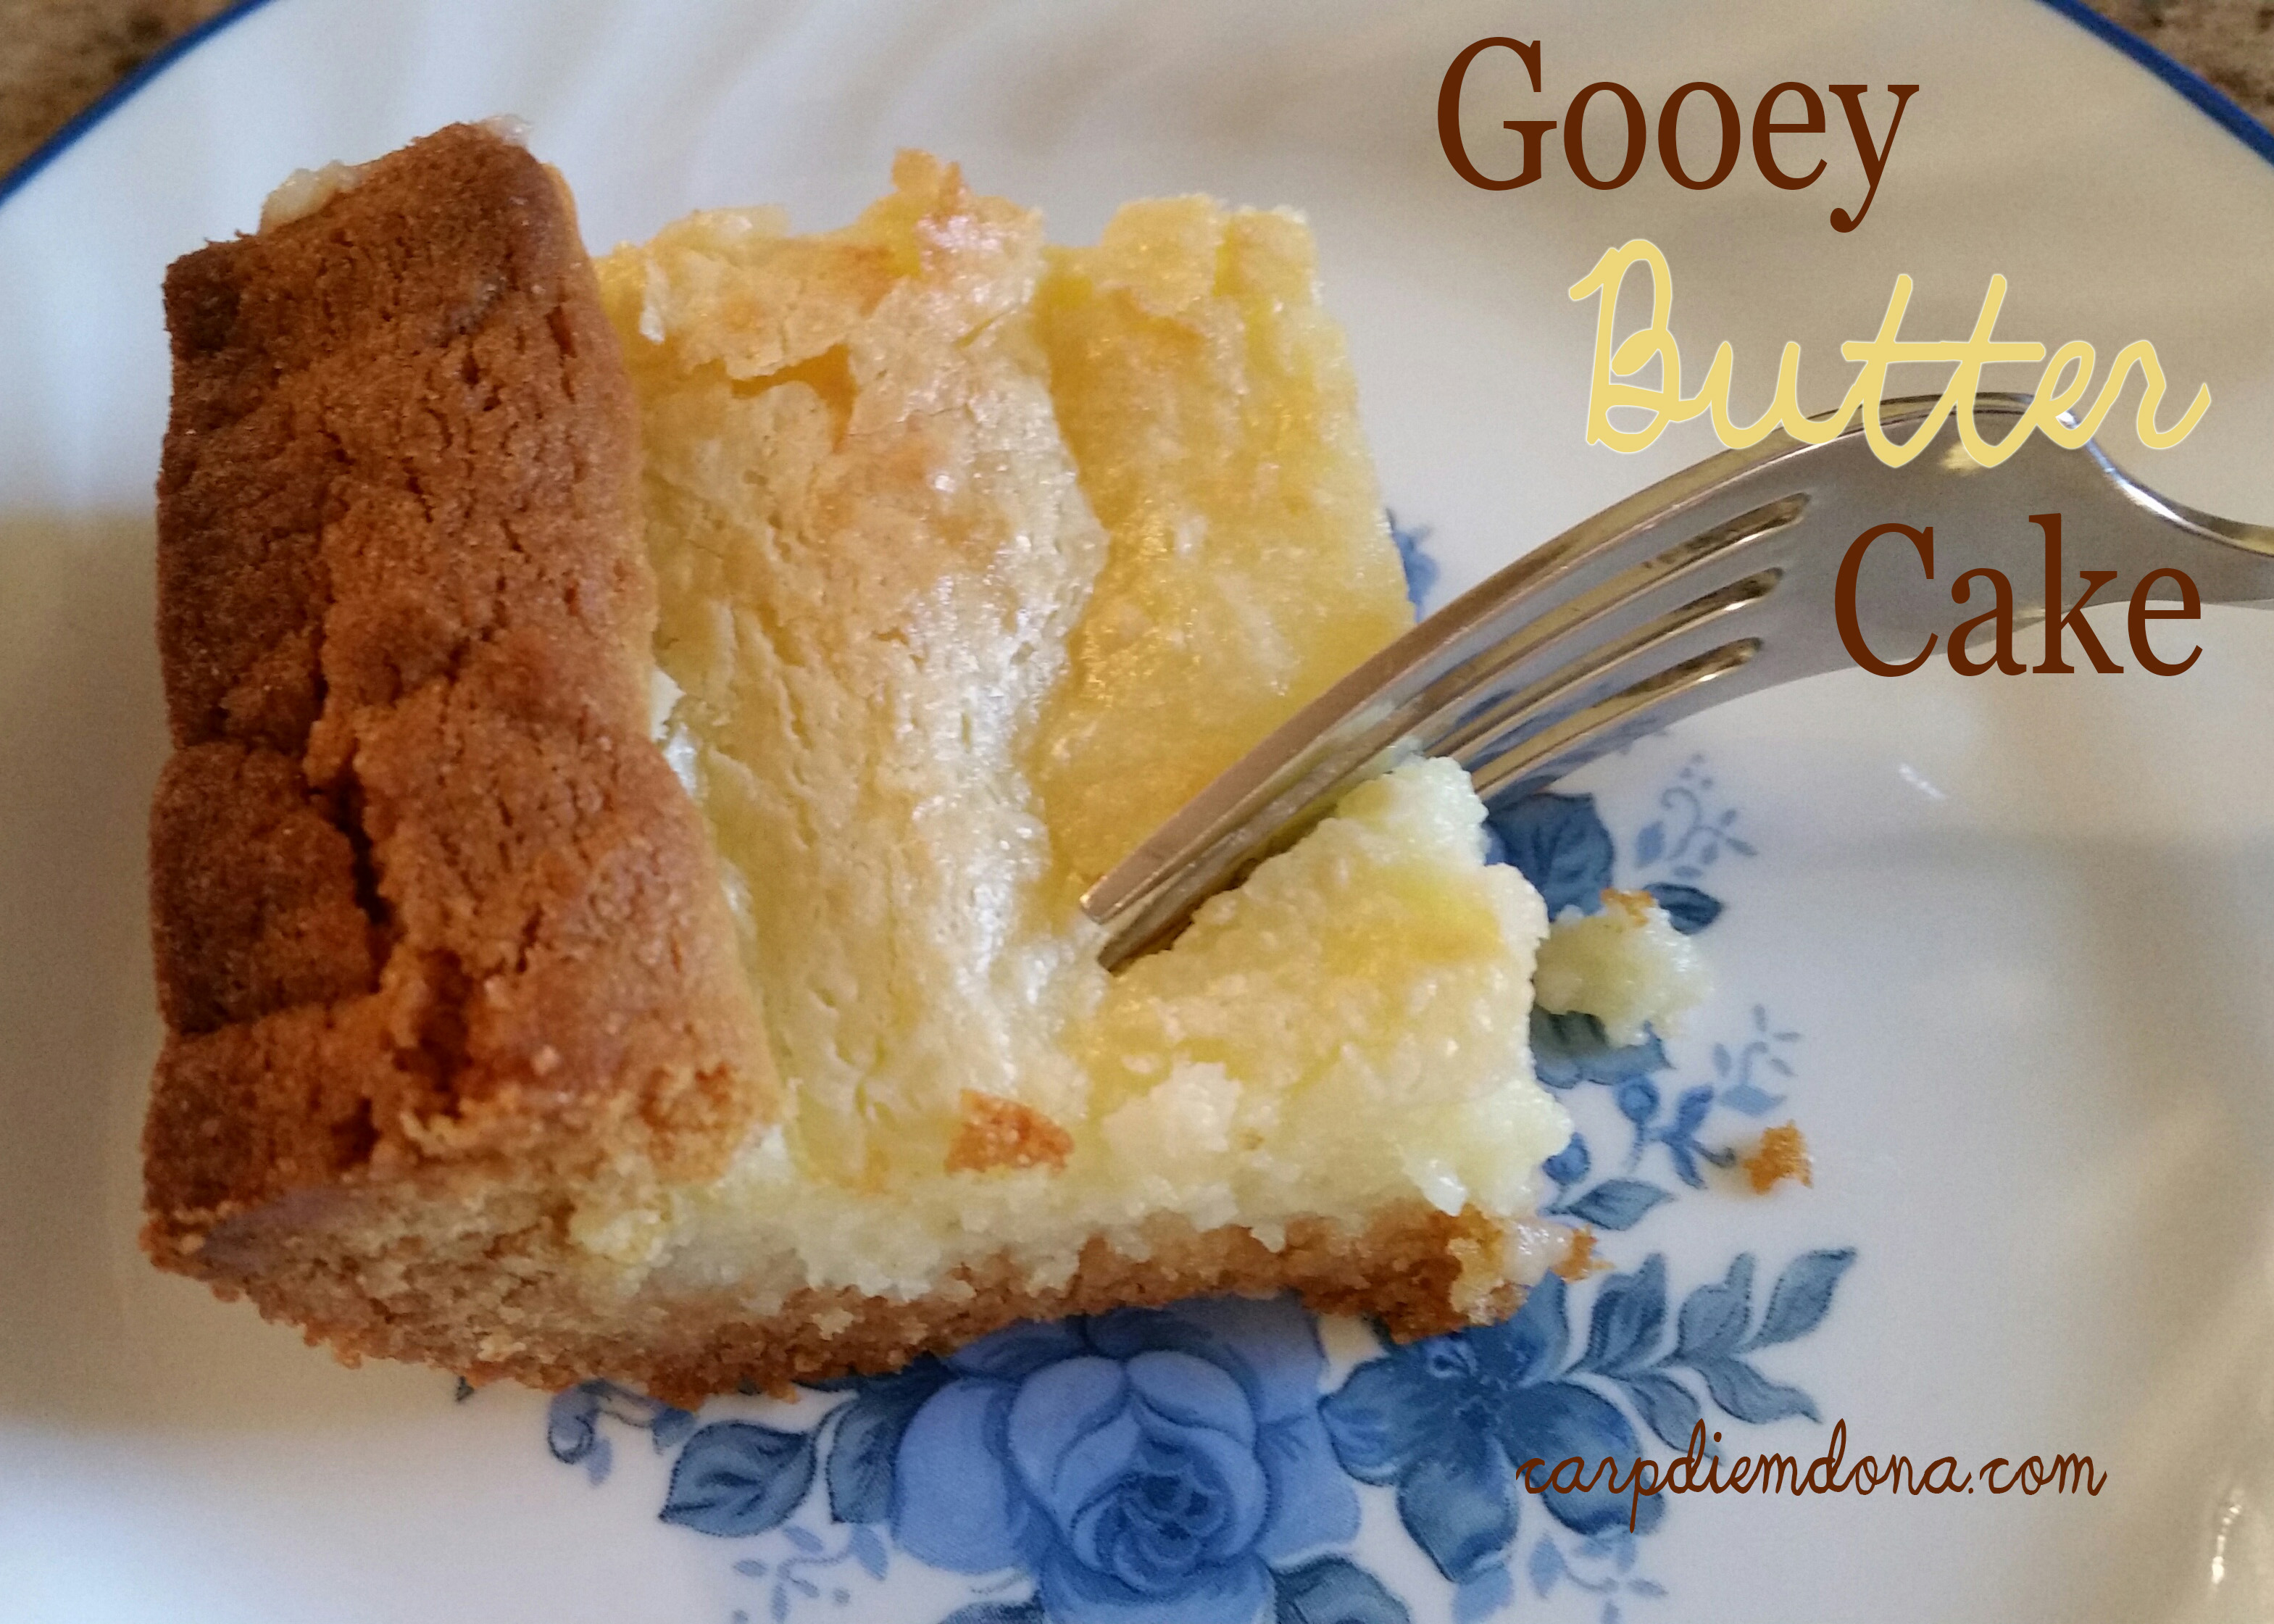 Gooey Butter Cake–A St. Louis Favorite